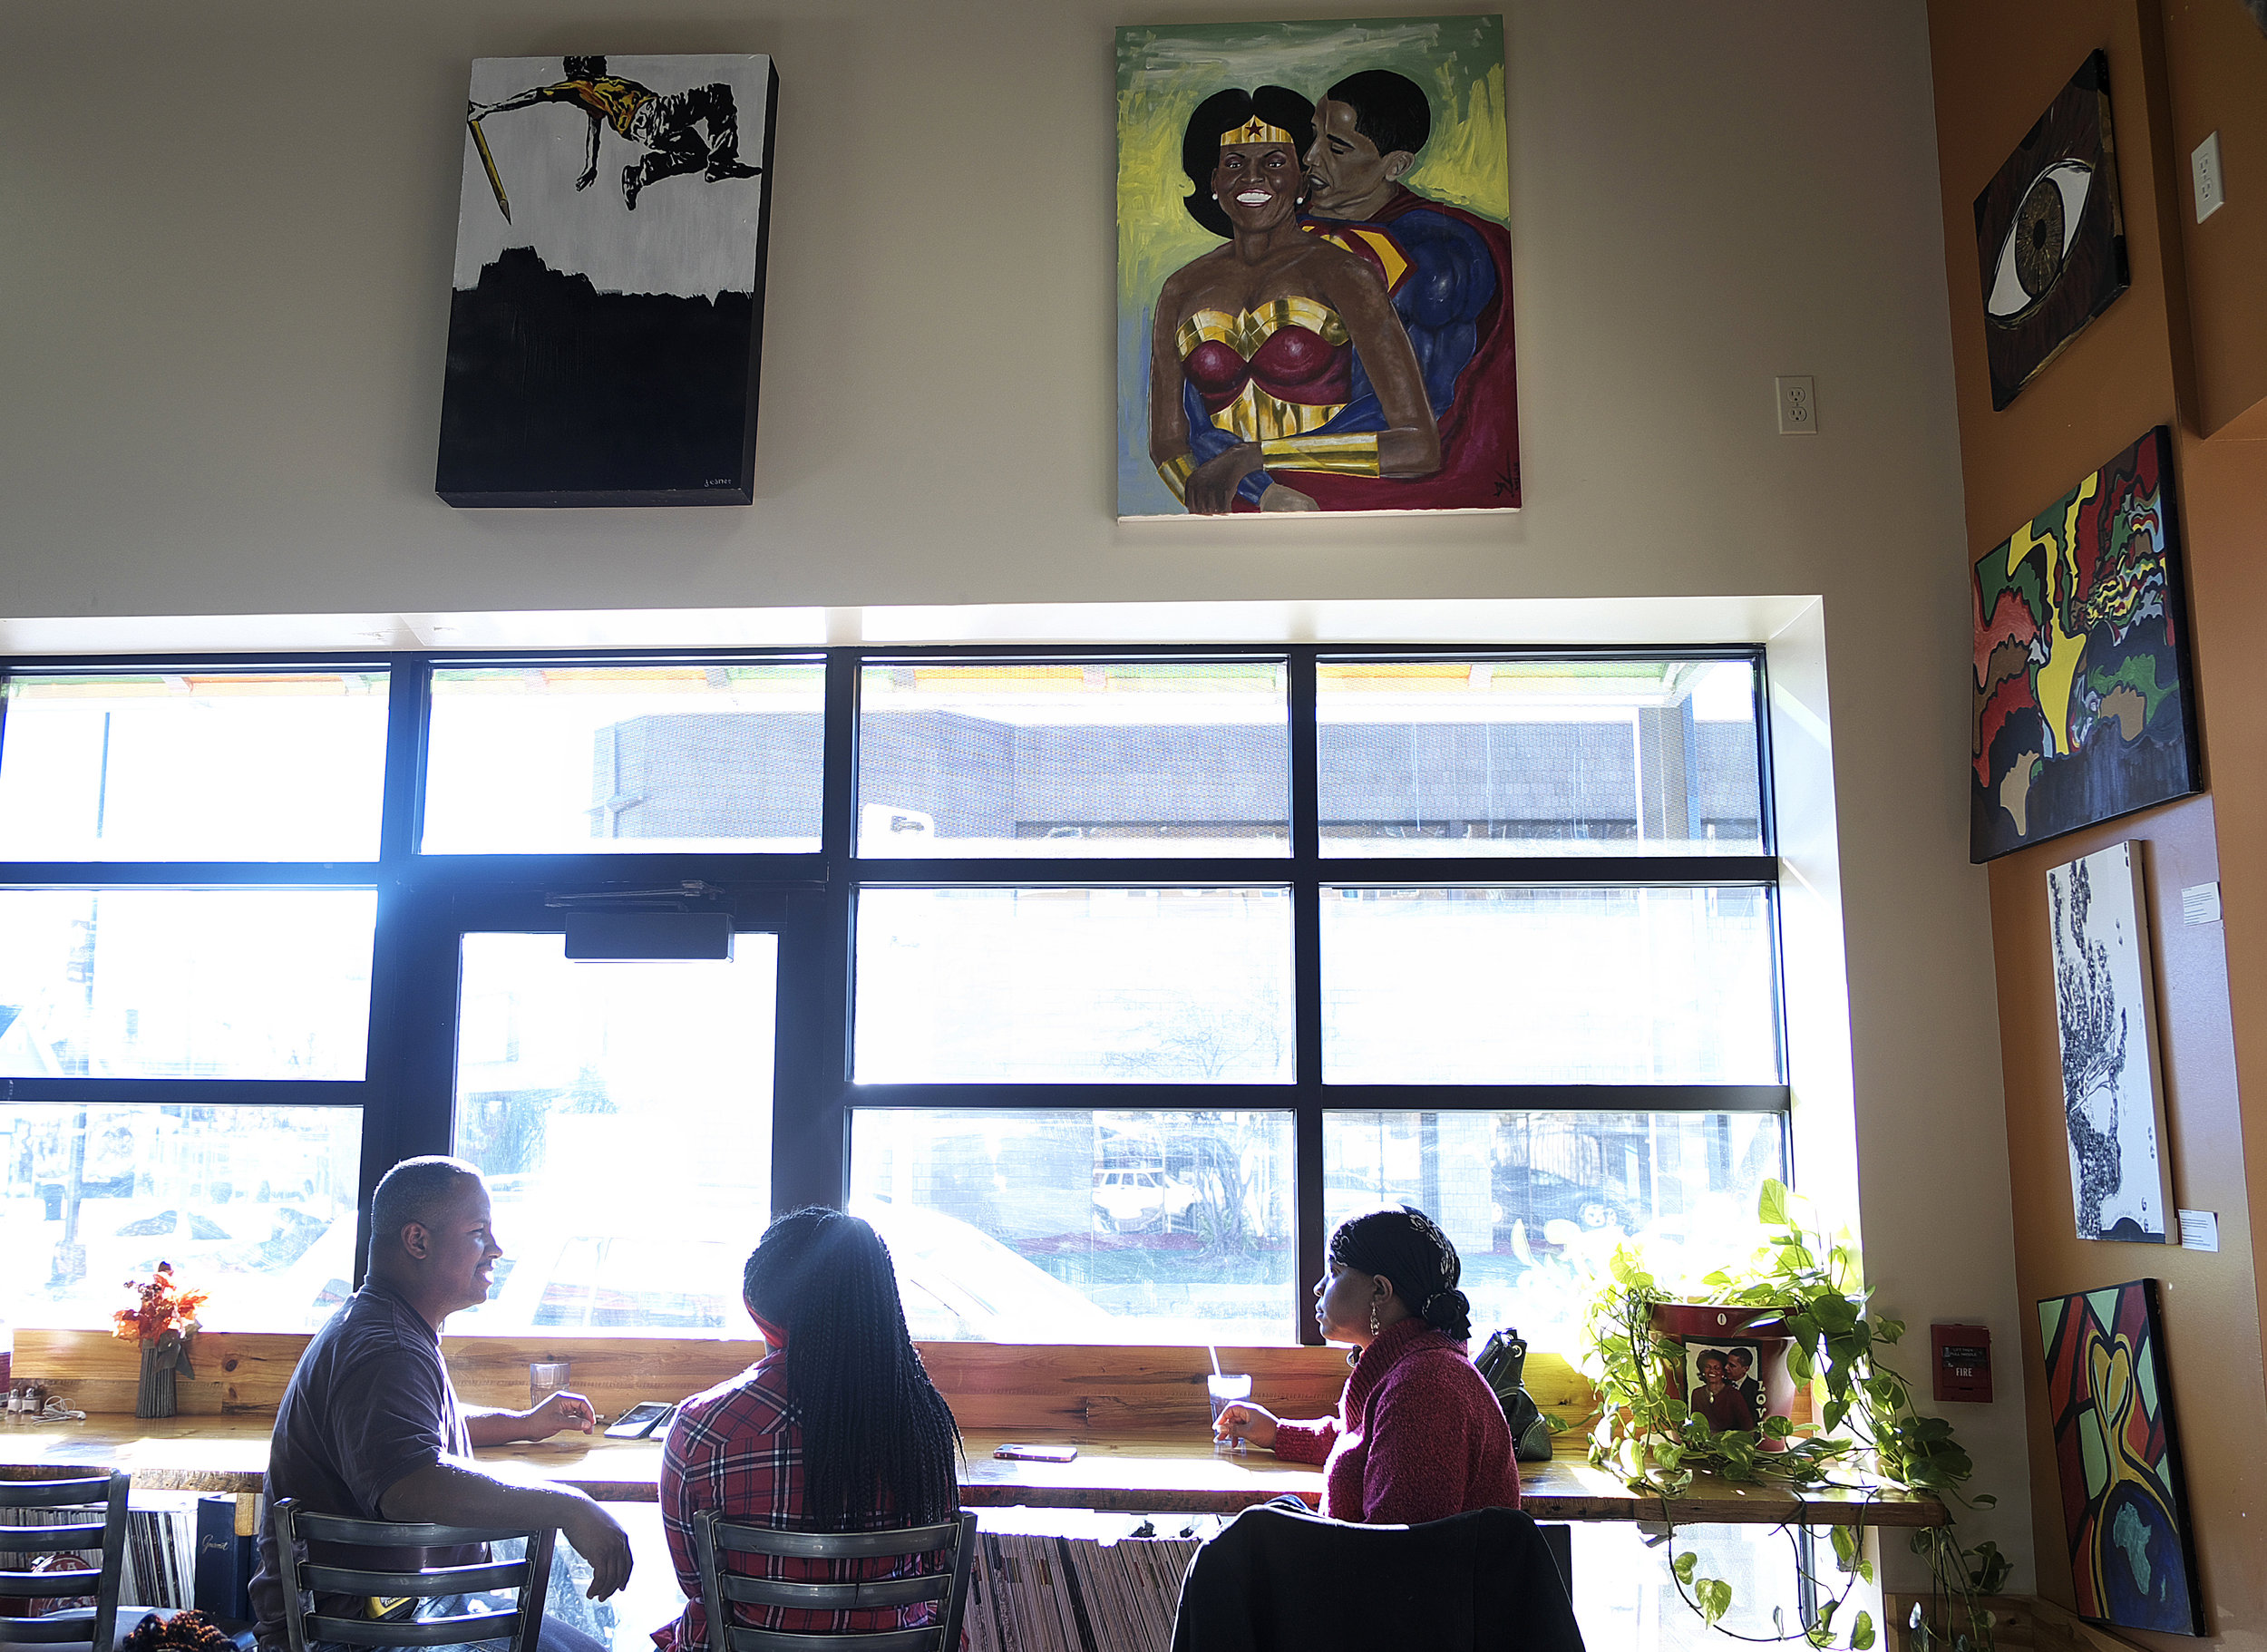 Breaking Bread Cafe is one of just a handful of full service restaurants in North Minneapolis. It was founded in 2015 by Princess Titus, Latasha Powell, and Michelle Horovitz.  Photo by David Pierini